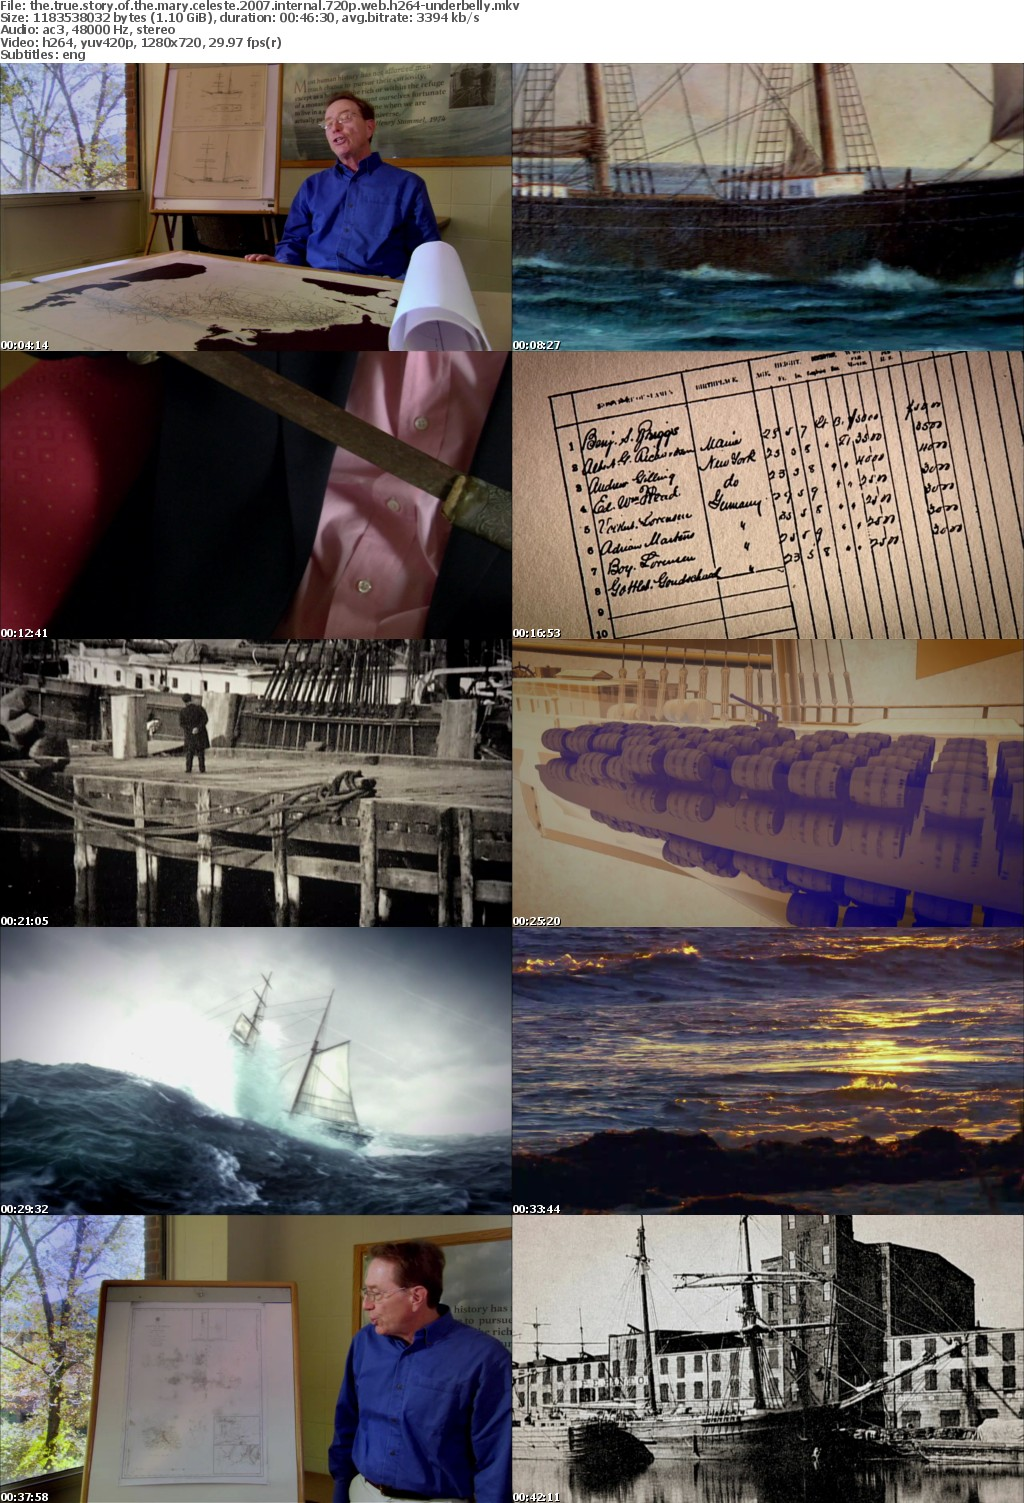 The True Story of the Mary Celeste 2007 INTERNAL 720p WEB H264-UNDERBELLY